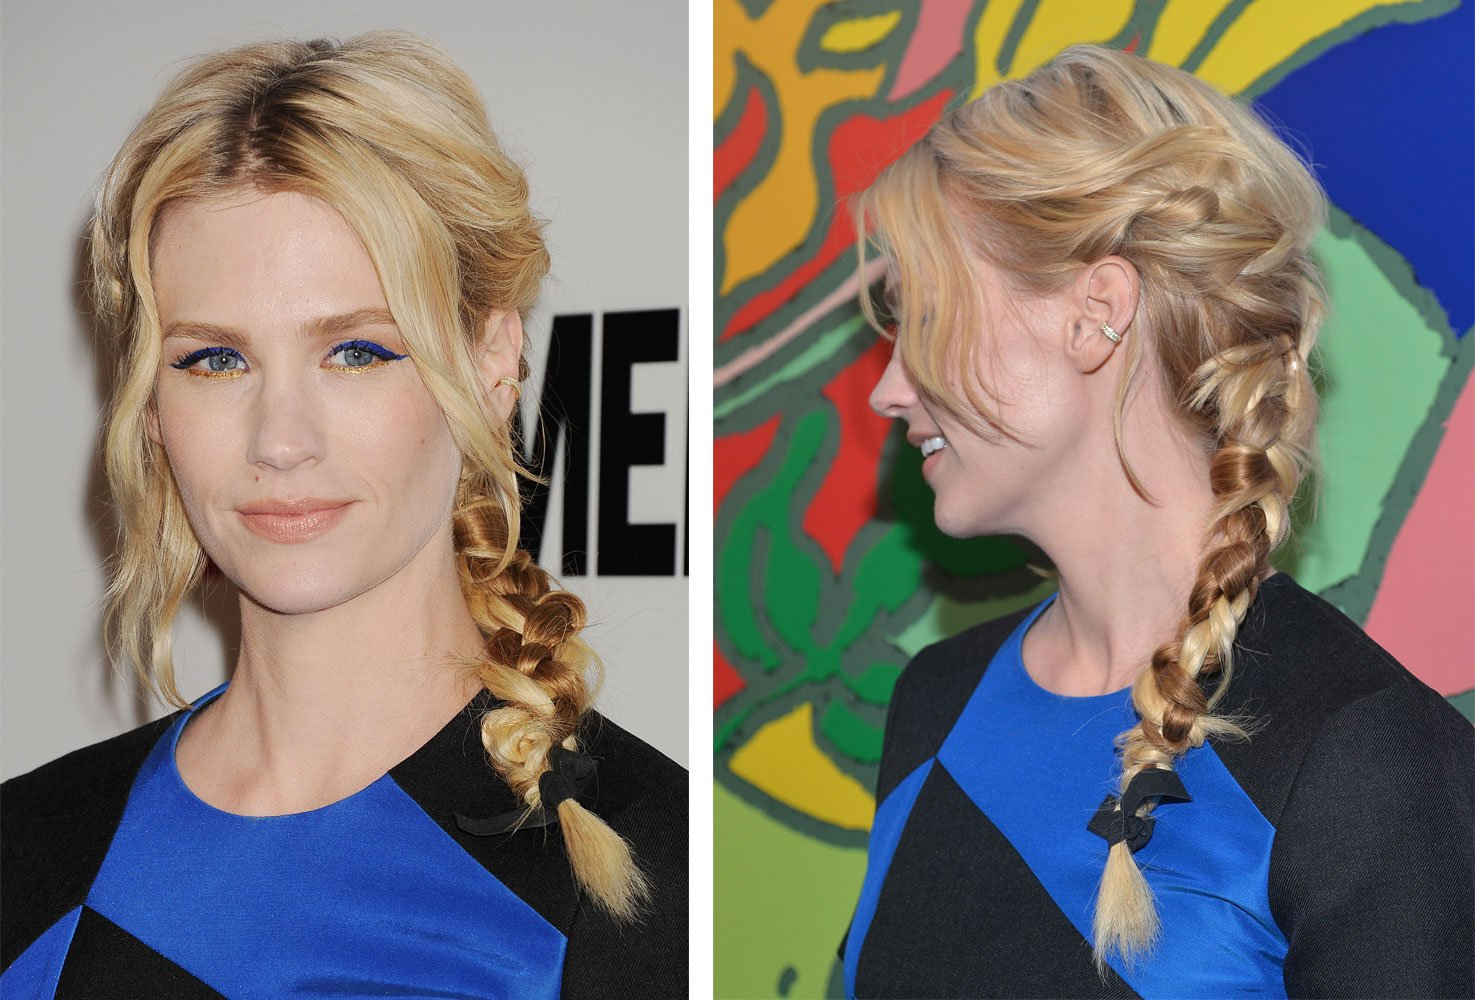 HOW-TO: January Jones at 'Mad Men' Season 7 Premiere